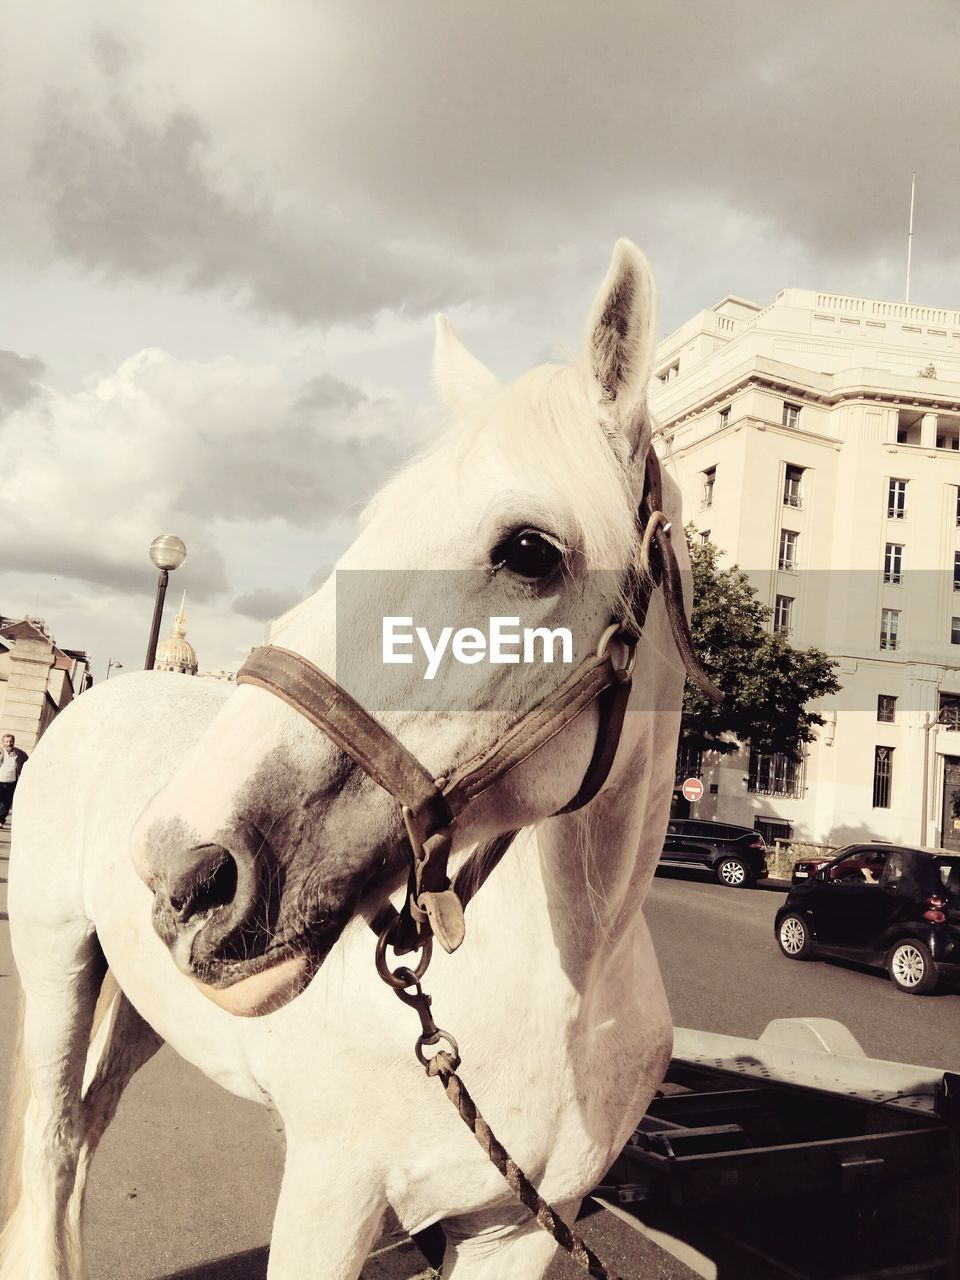 Close-Up Of Horse With Buildings In Background